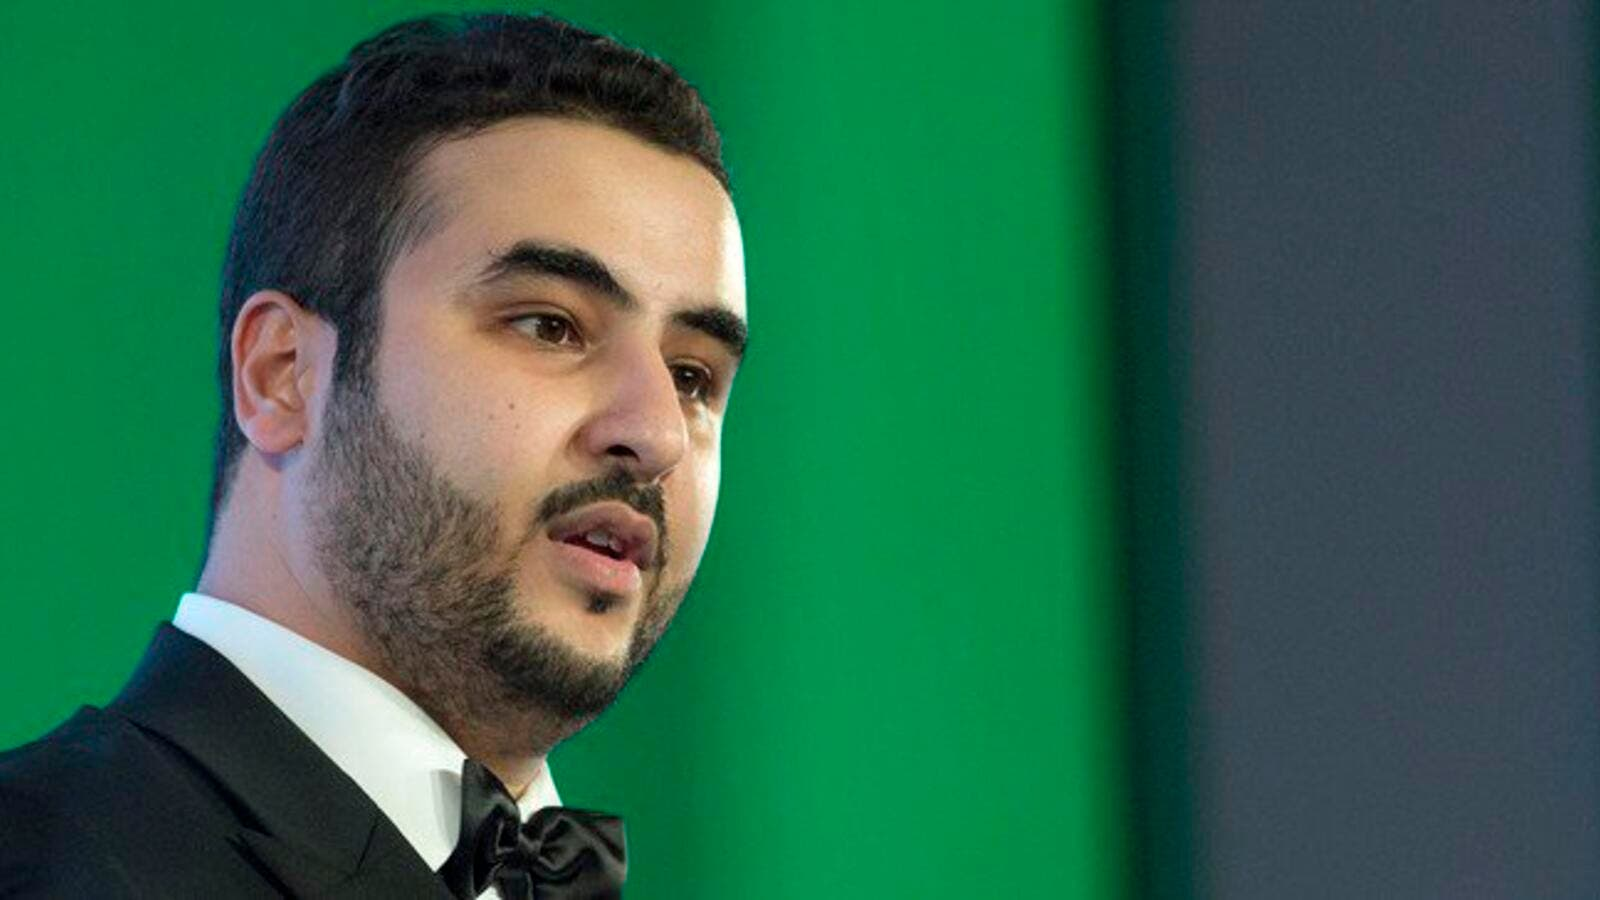 Saudi Arabia's ambassador to the United States, Prince Khalid bin Salman. (AFP/File Photo)